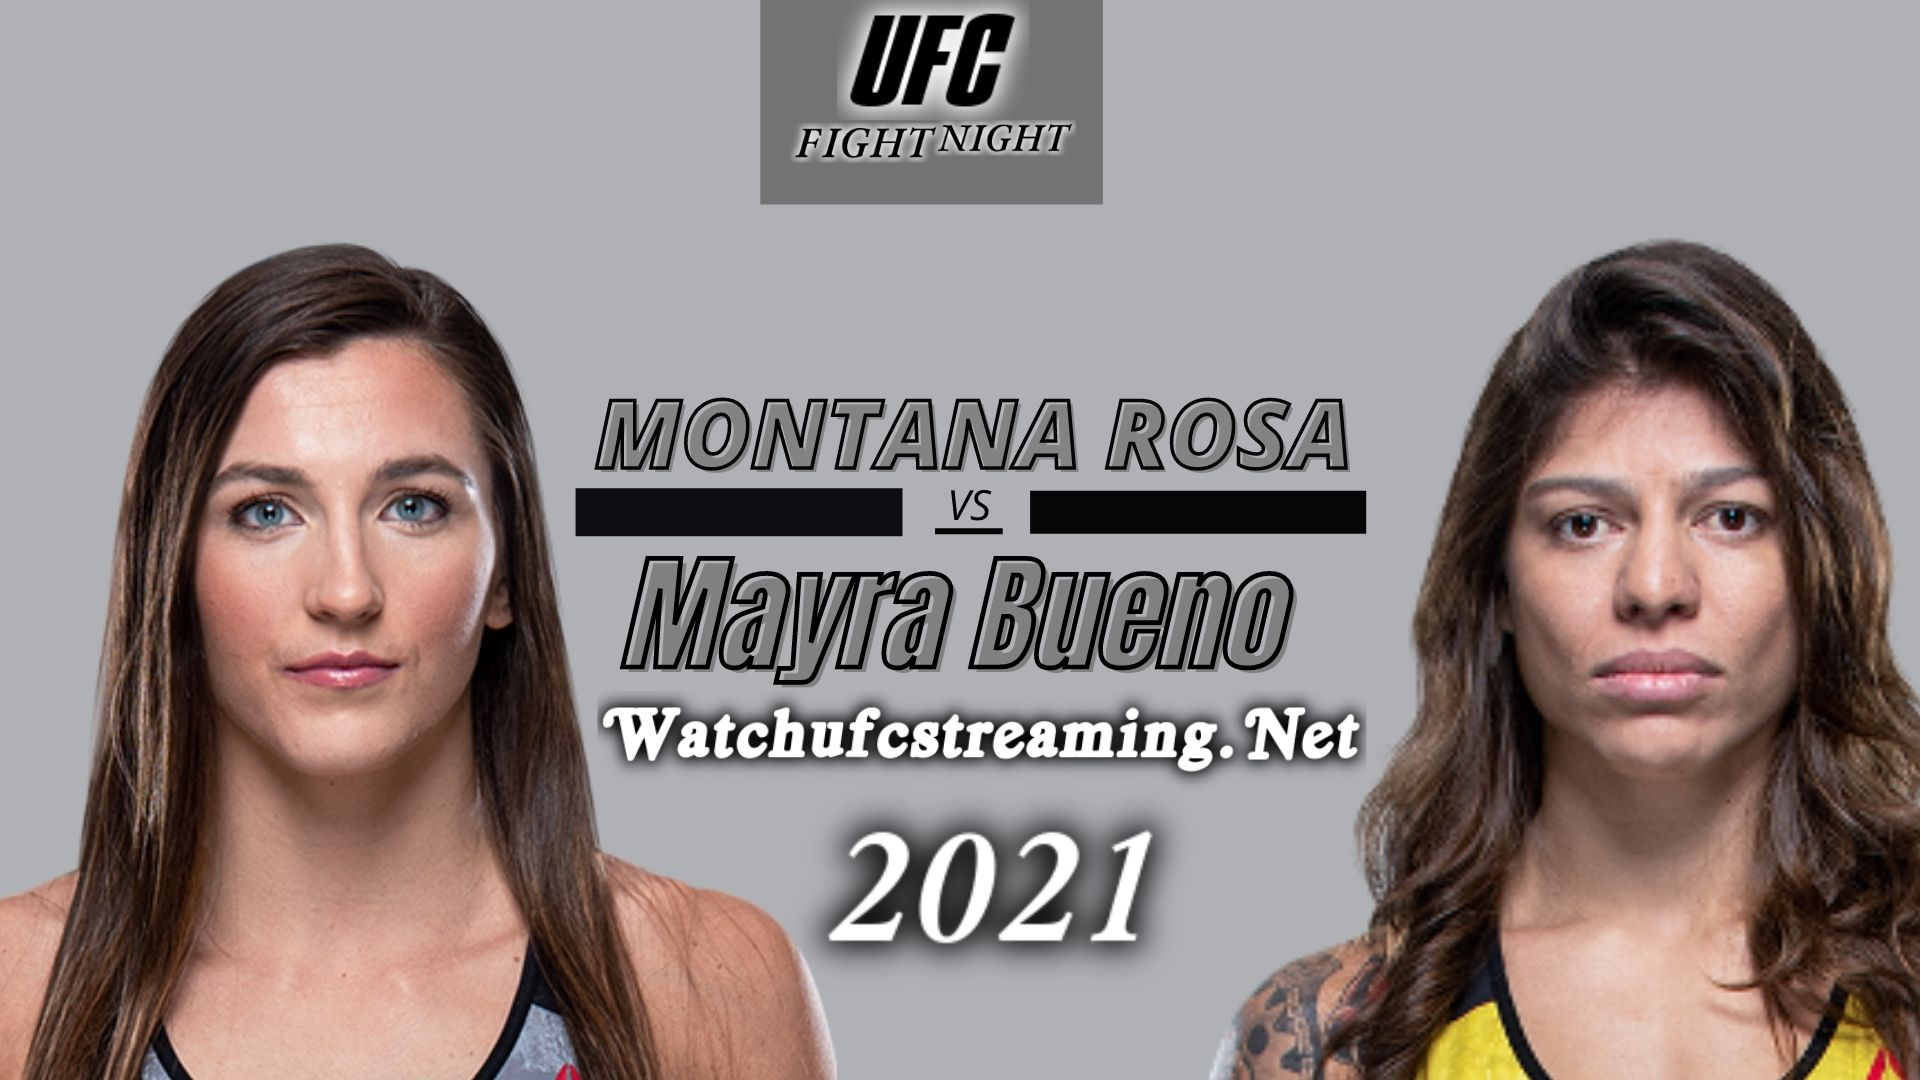 UFC - Montana Rosa Vs Mayra Silva Highlights 2021 | Flyweight